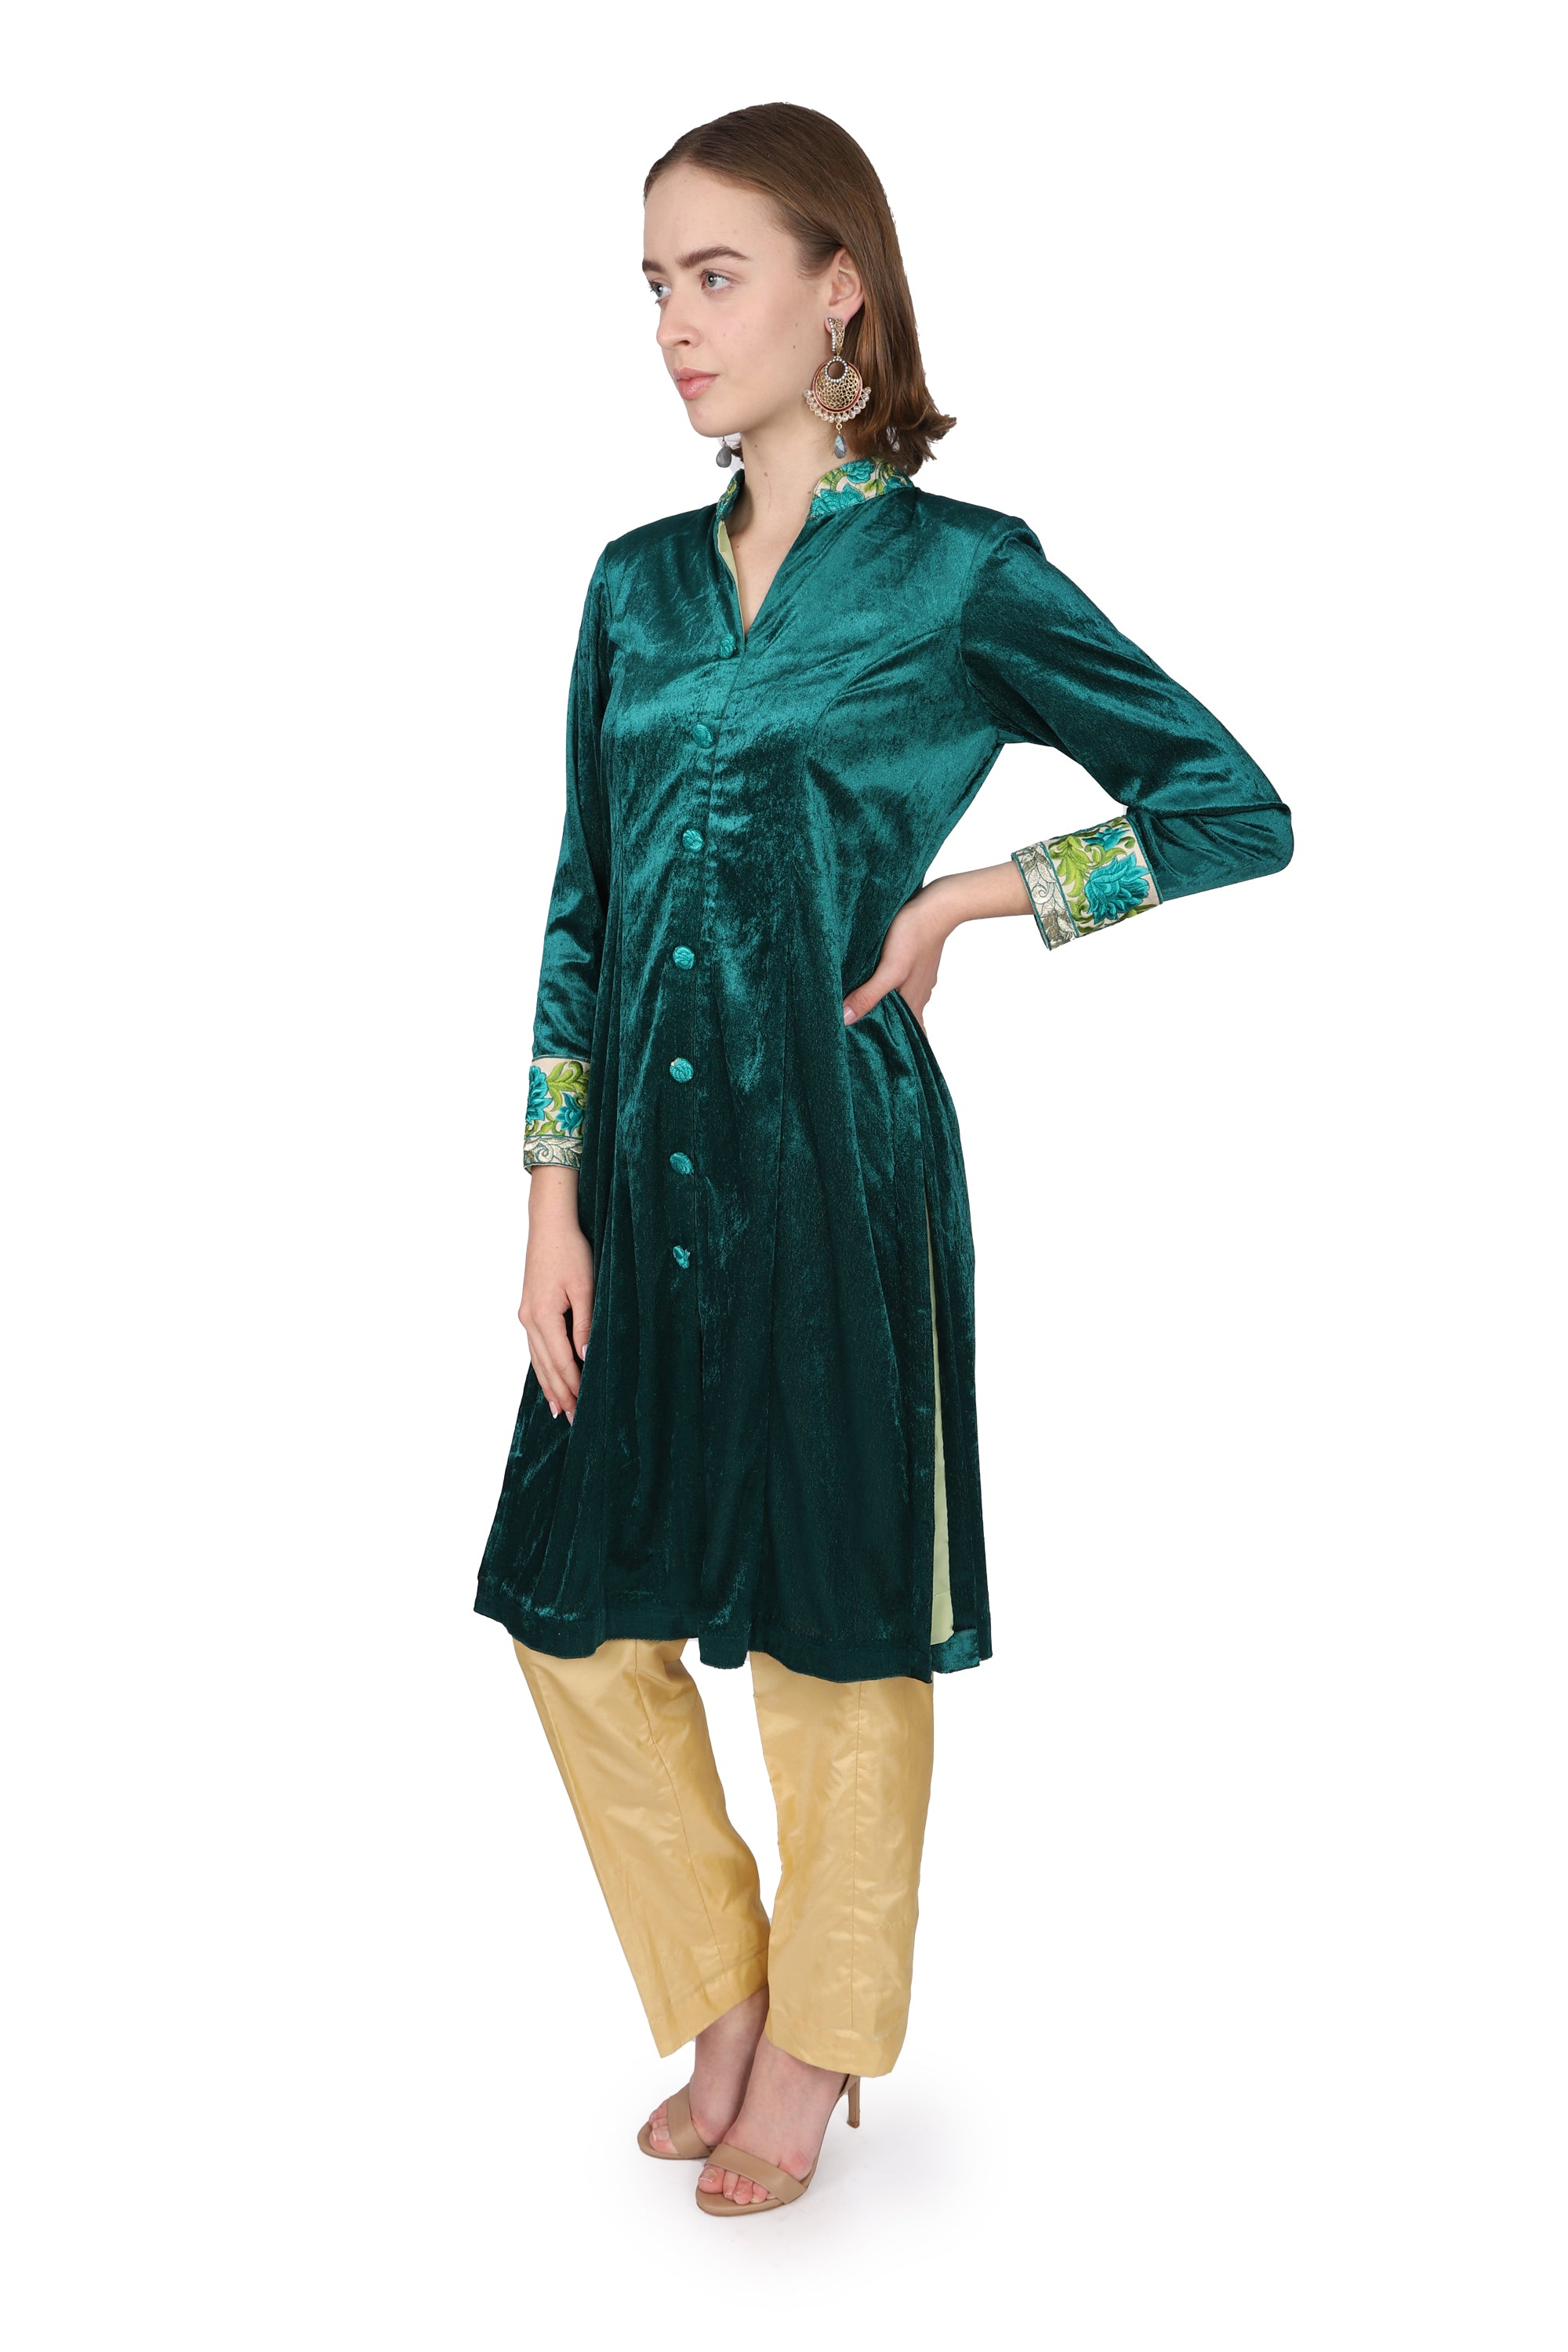 Velvet Green /Tunic only